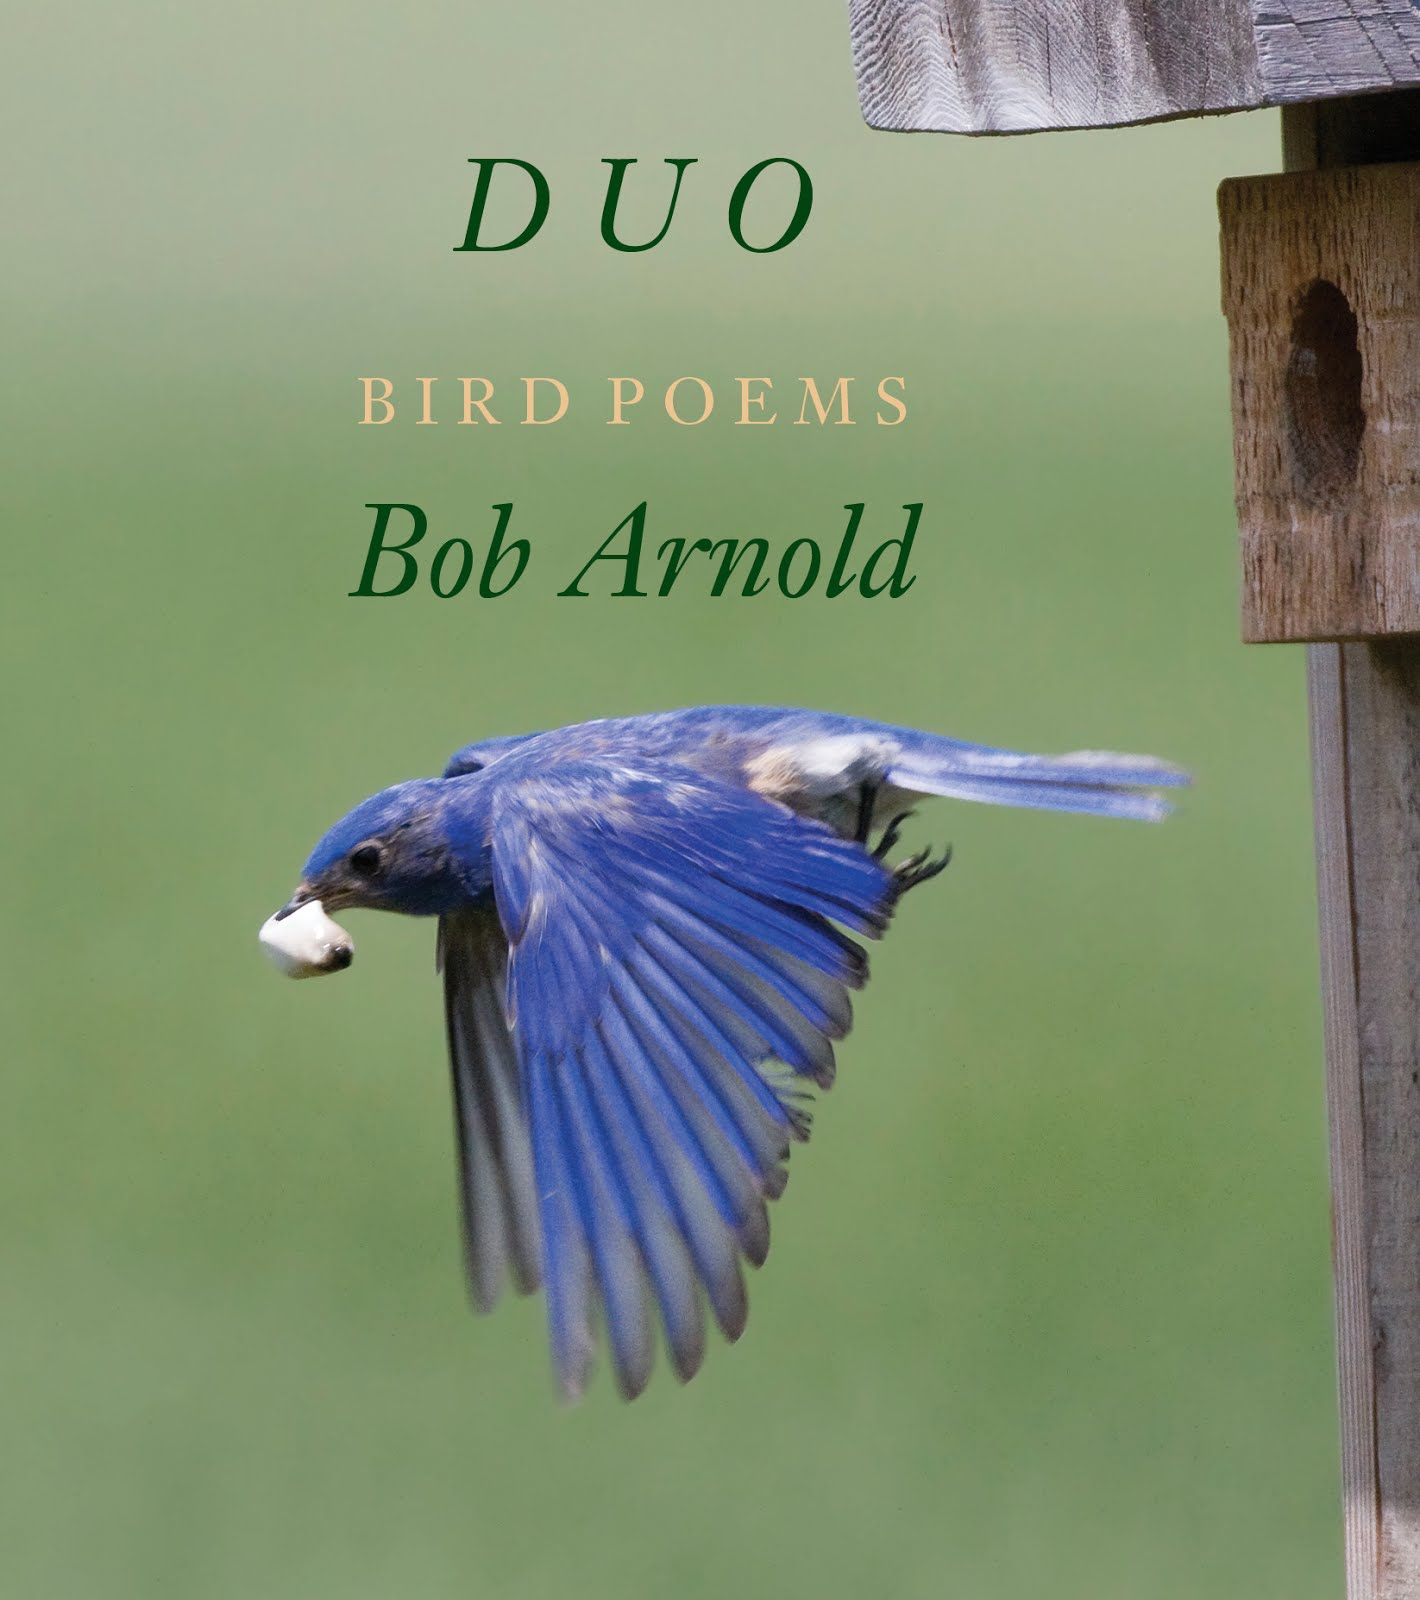 Duo by Bob Arnold — New from Longhouse   Please link to A Longhouse Birdhouse for more information